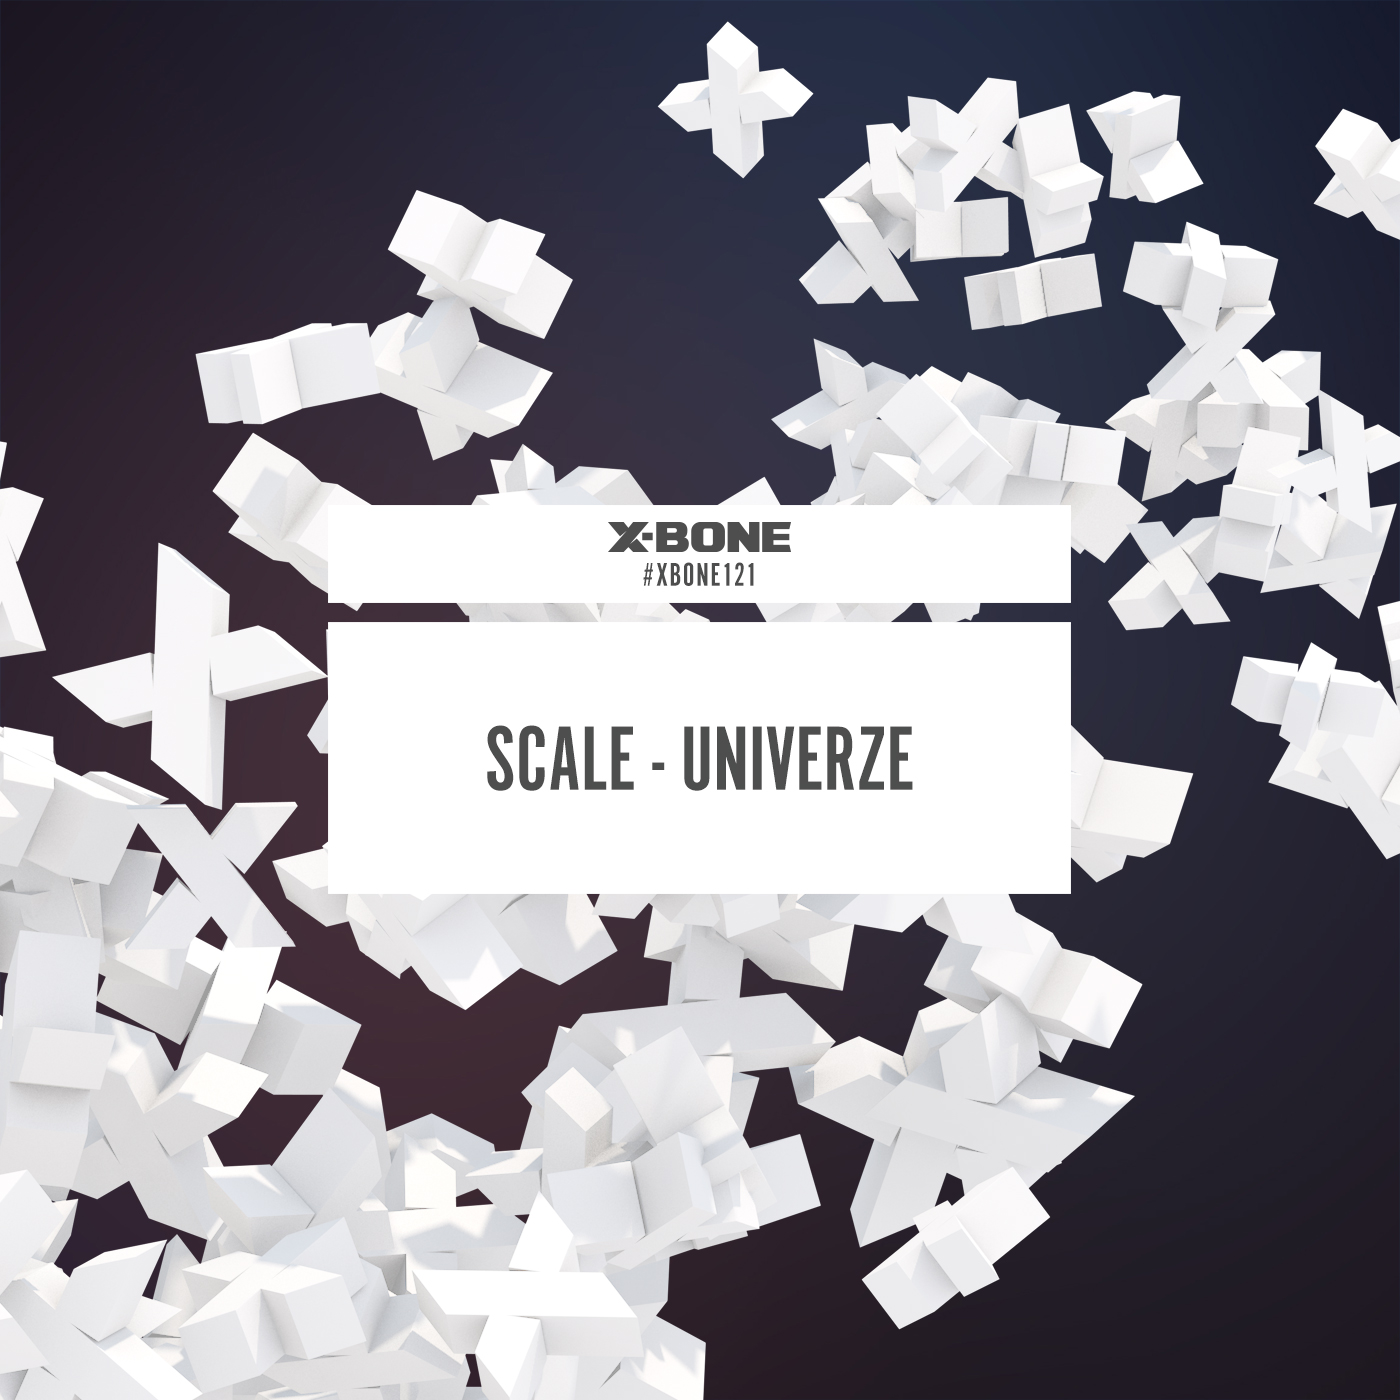 Scale - Univerze [X-BONE RECORDS] XBONE121